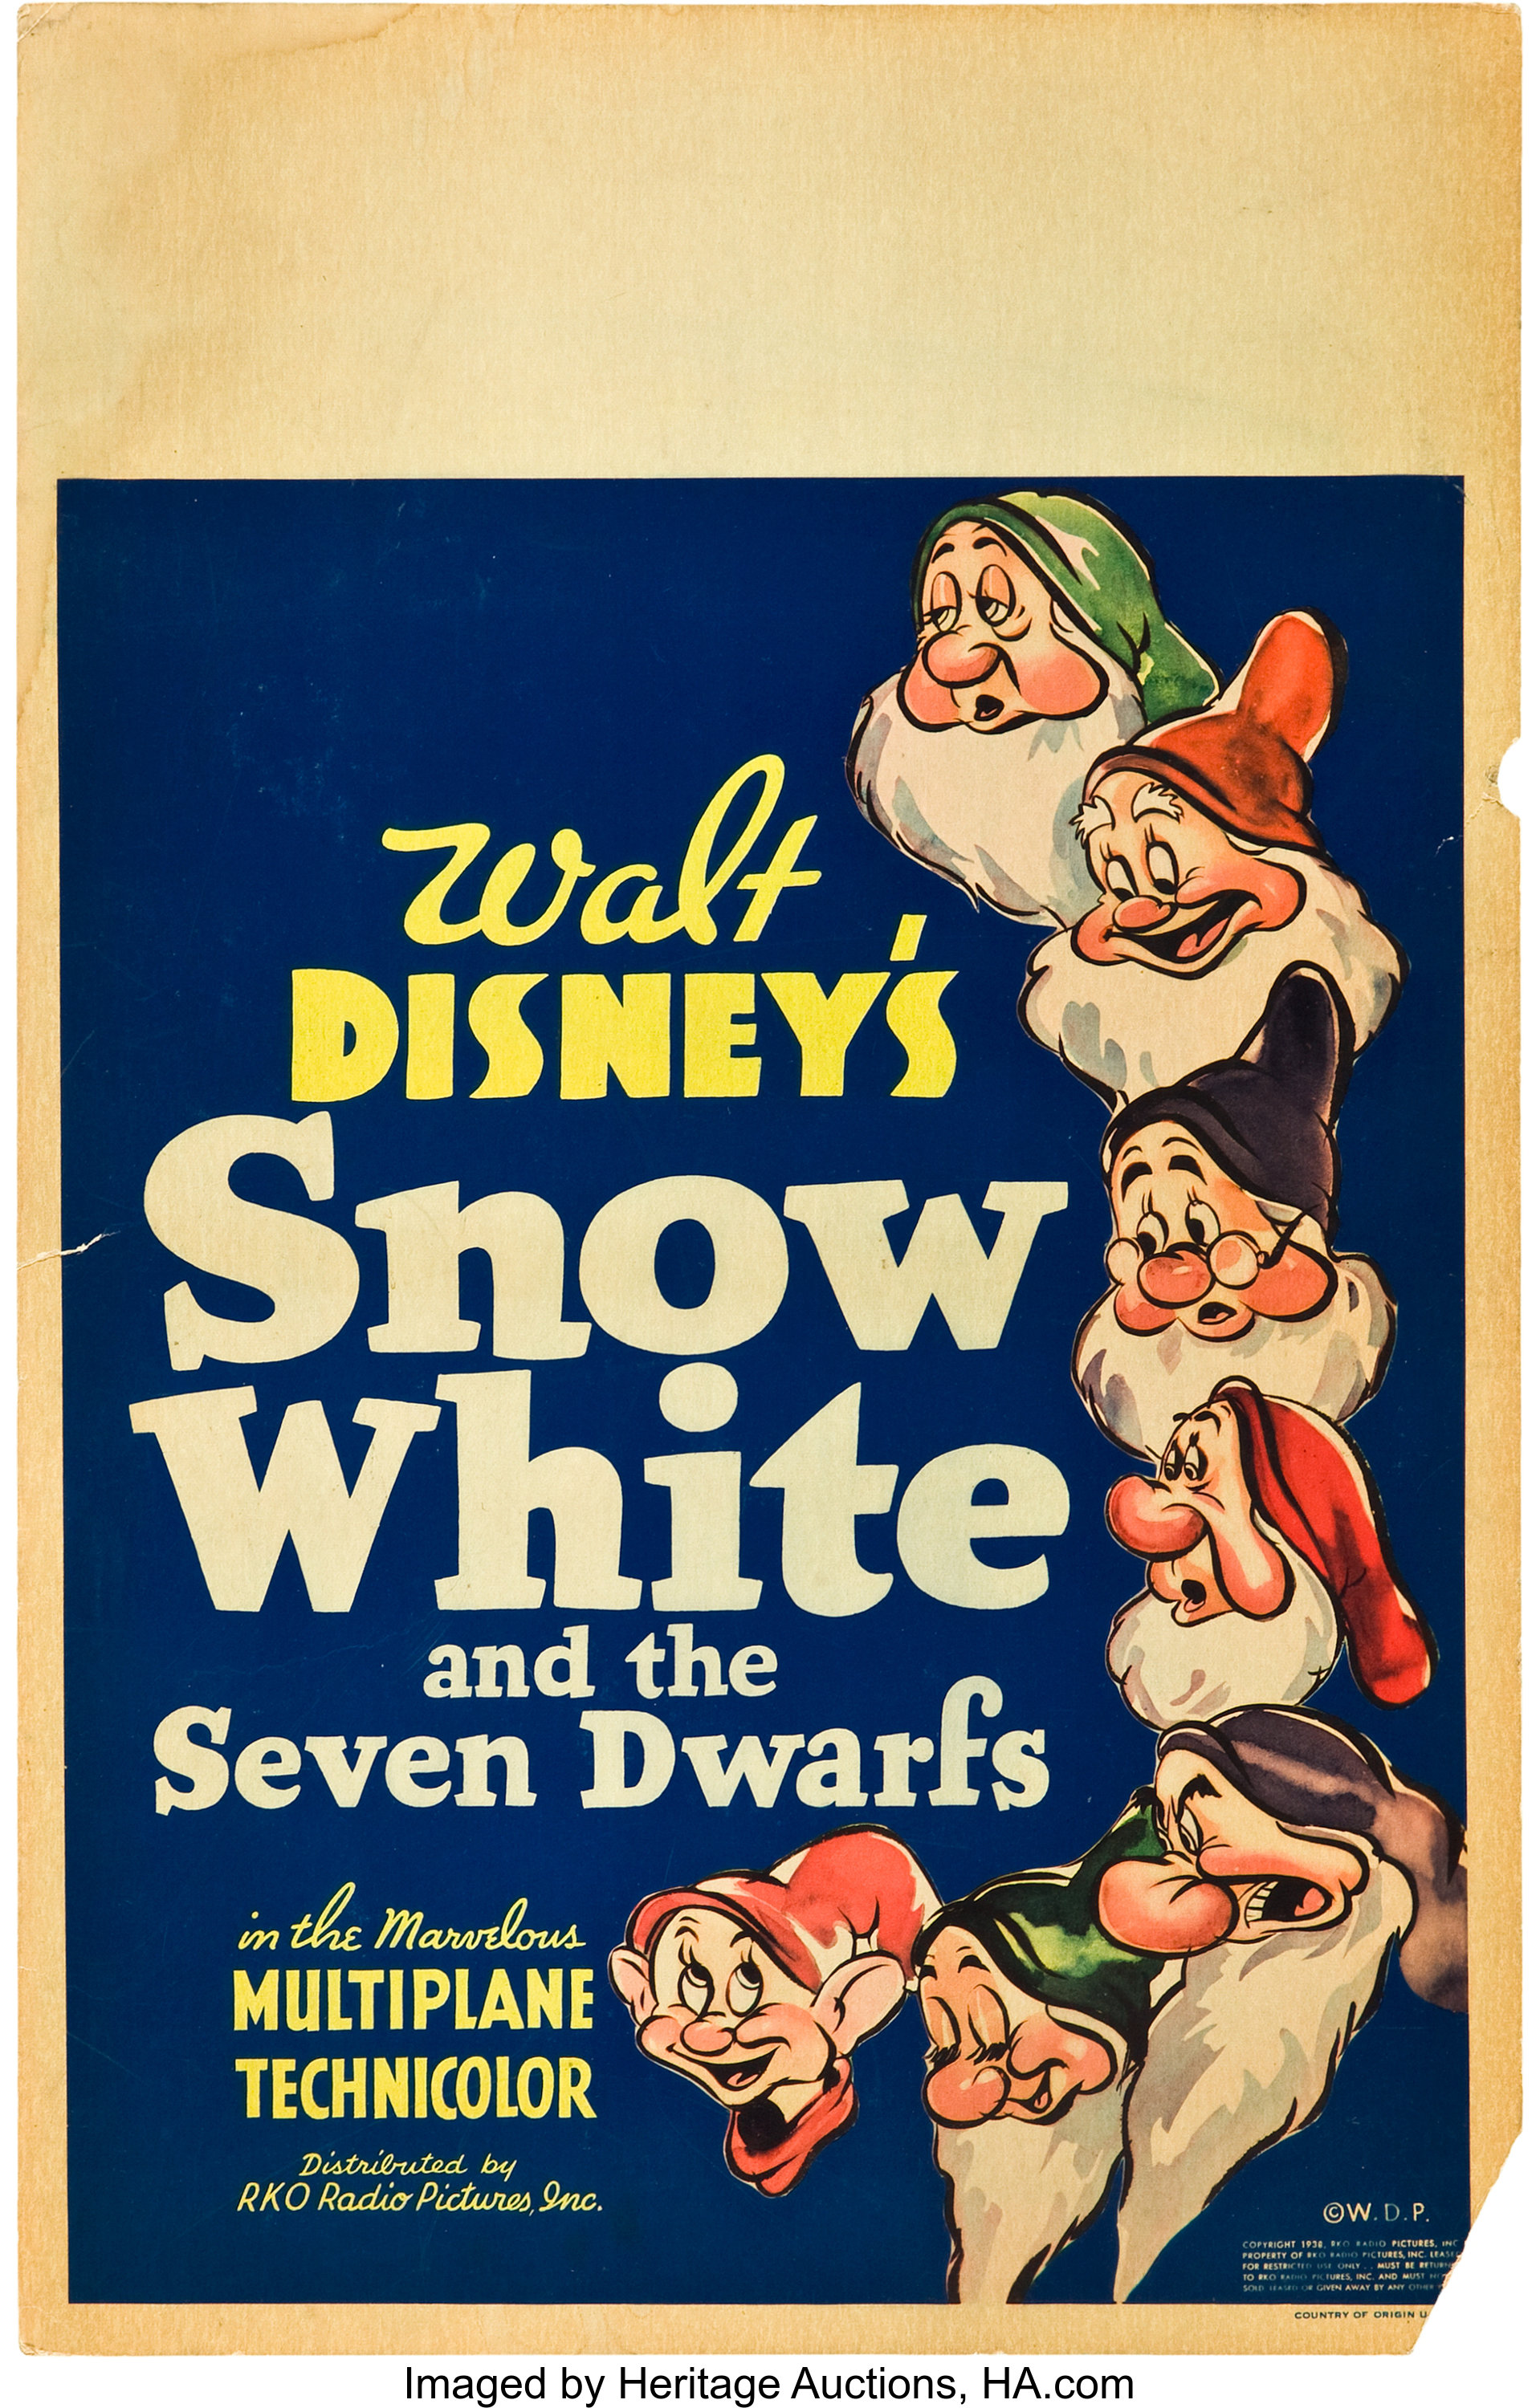 Snow White And The Seven Dwarfs Rko 1937 Window Card 14 X Lot 83130 Heritage Auctions